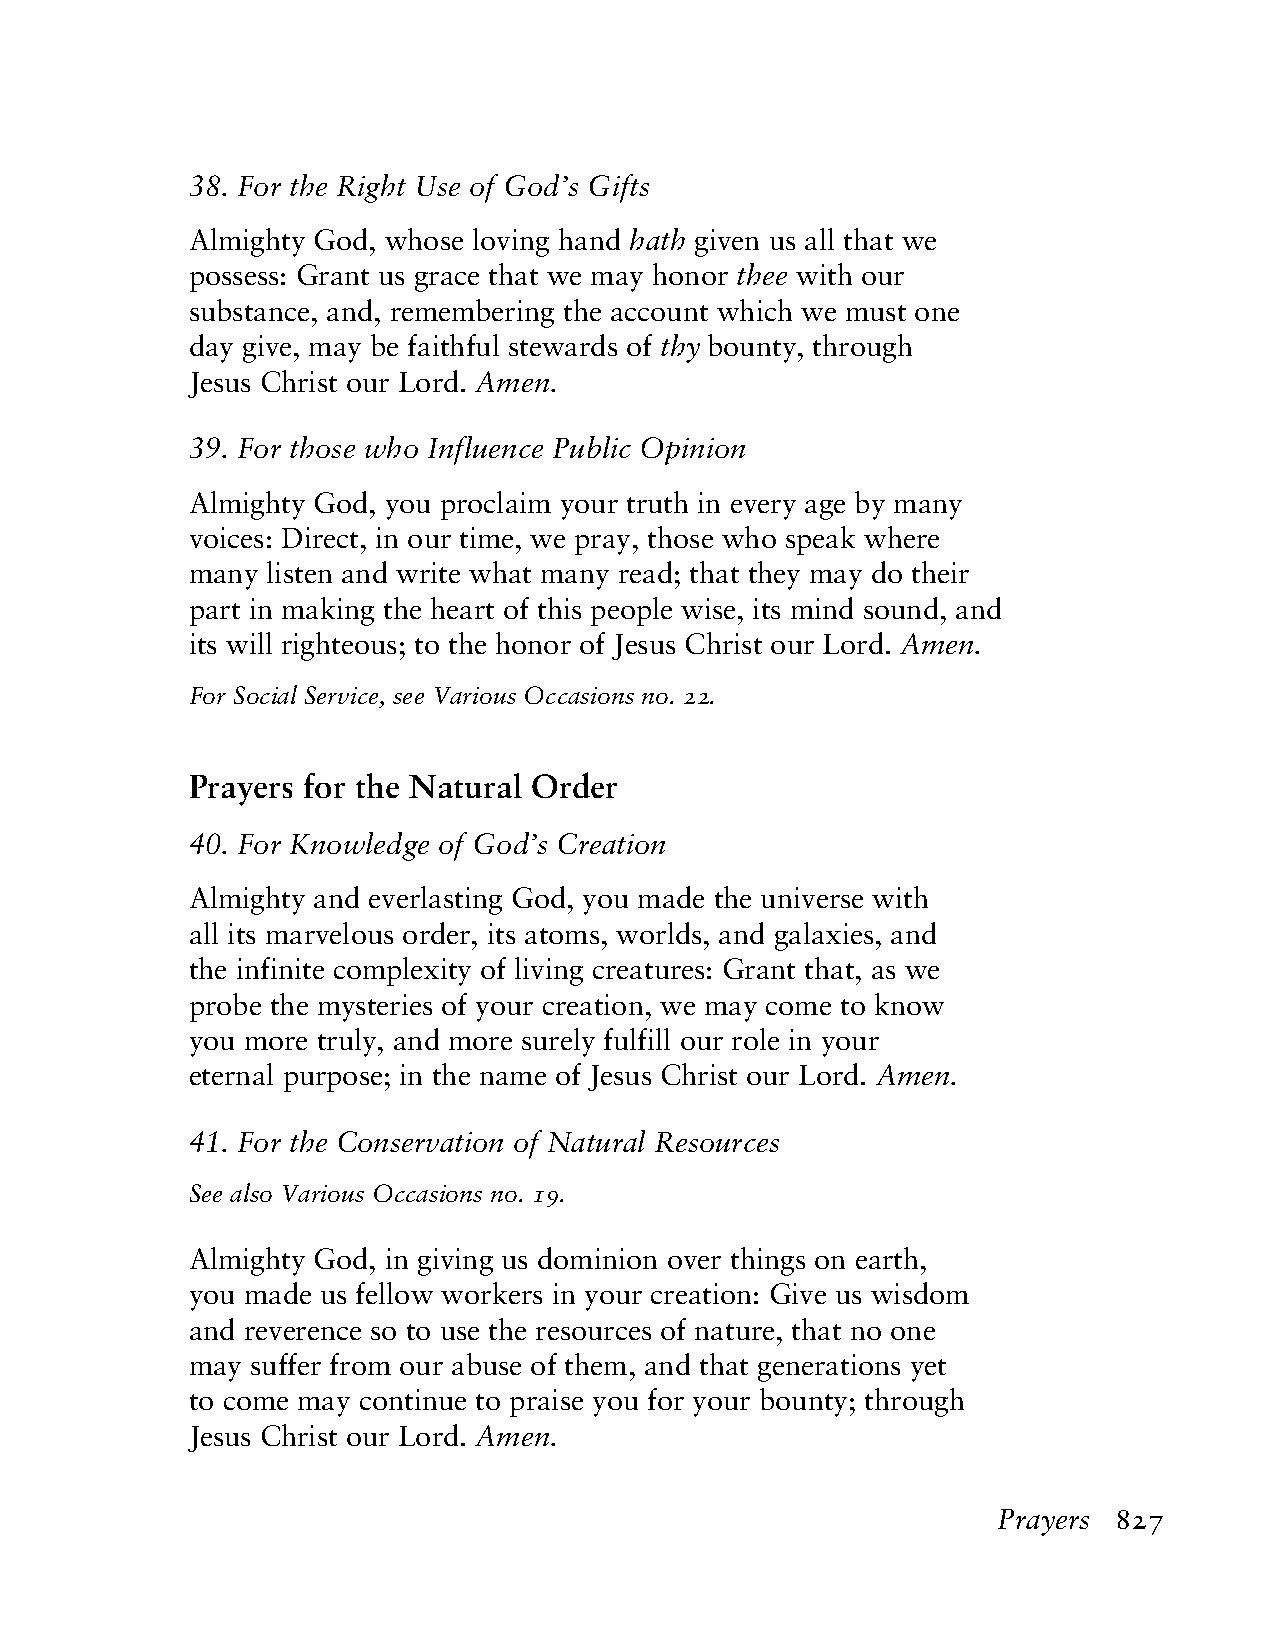 Prayer to the Lord God for all occasions